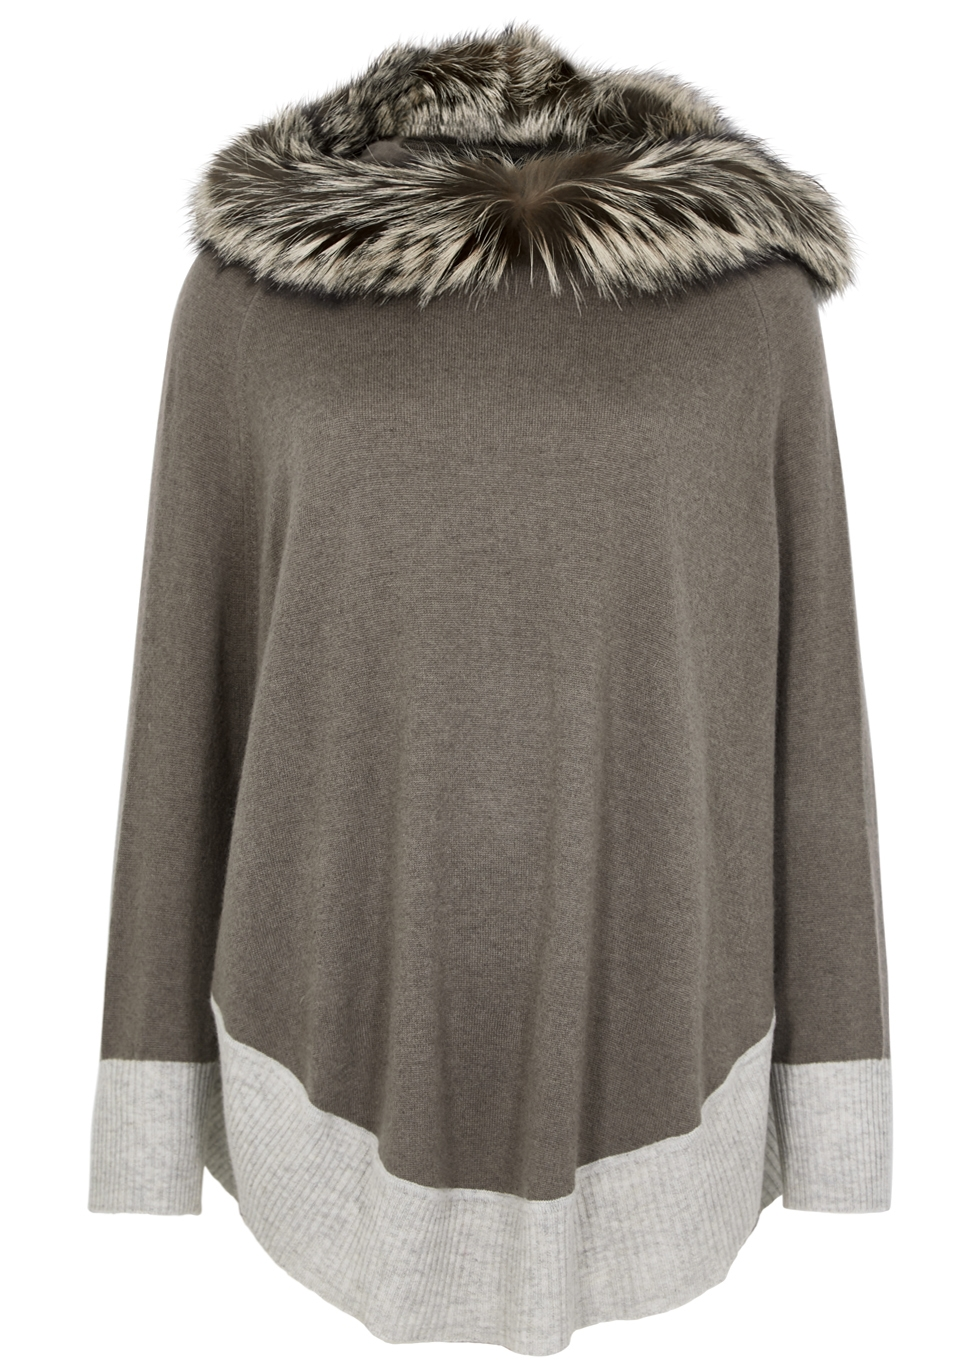 DOM GOOR Fur-Trimmed Cashmere Poncho in Grey